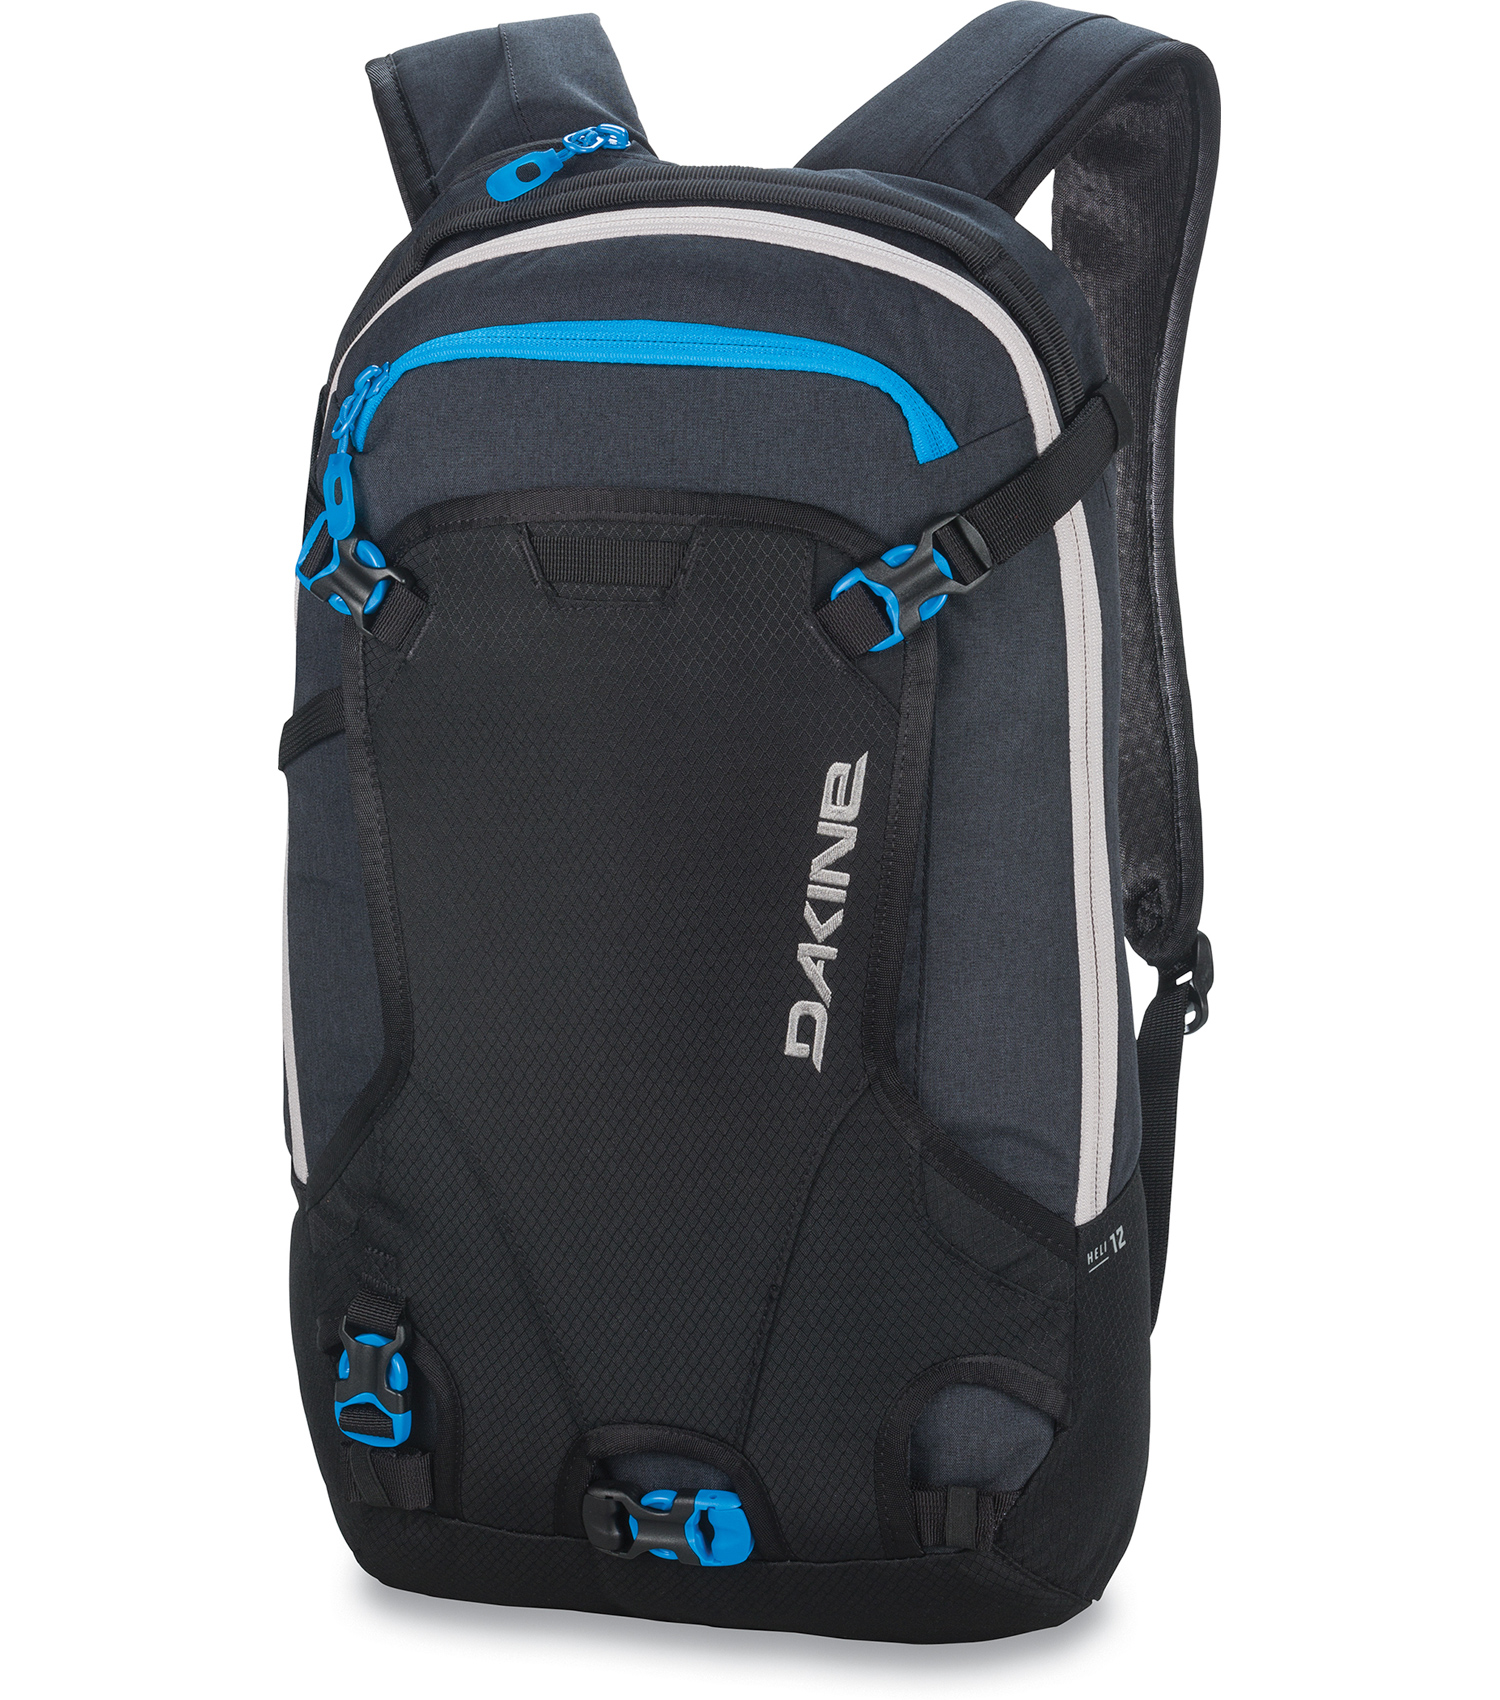 dakine heli pro sale with 272402237265 on Dakine backpacks   dakine heli pro 20l snow pack   black 223362 as well Dakine Heli Pro Dlx Backpack 18l Womens as well 272023032748 likewise Dakine Heli Pro 20l Backpack further Dakine backpacks   dakine womens heli pro dlx backpack   black 146144.